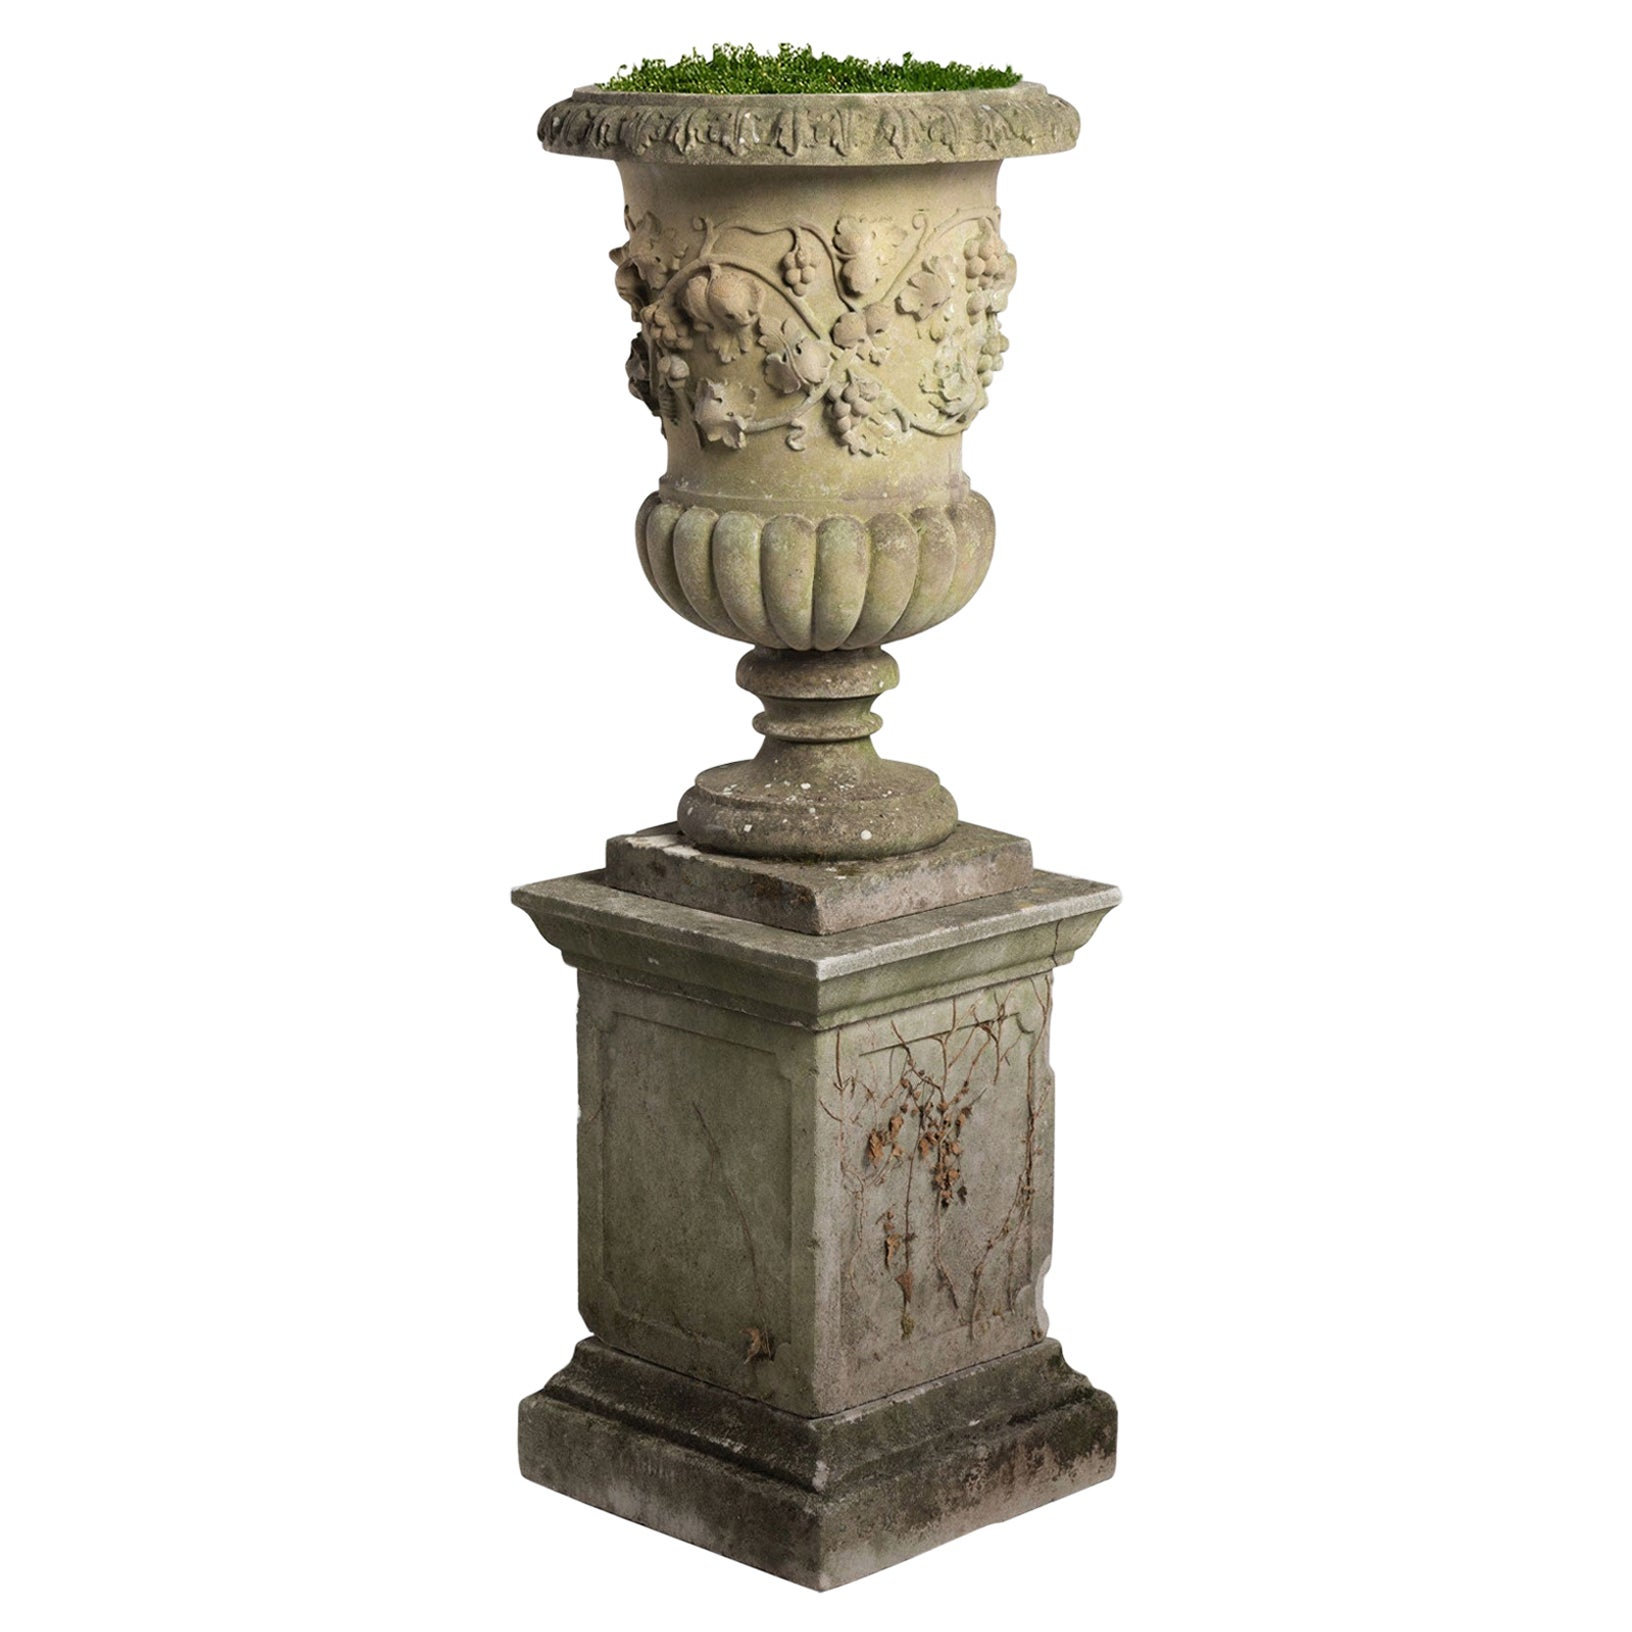 Decorative Cast Stone Urn with Pedestal, circa 1950